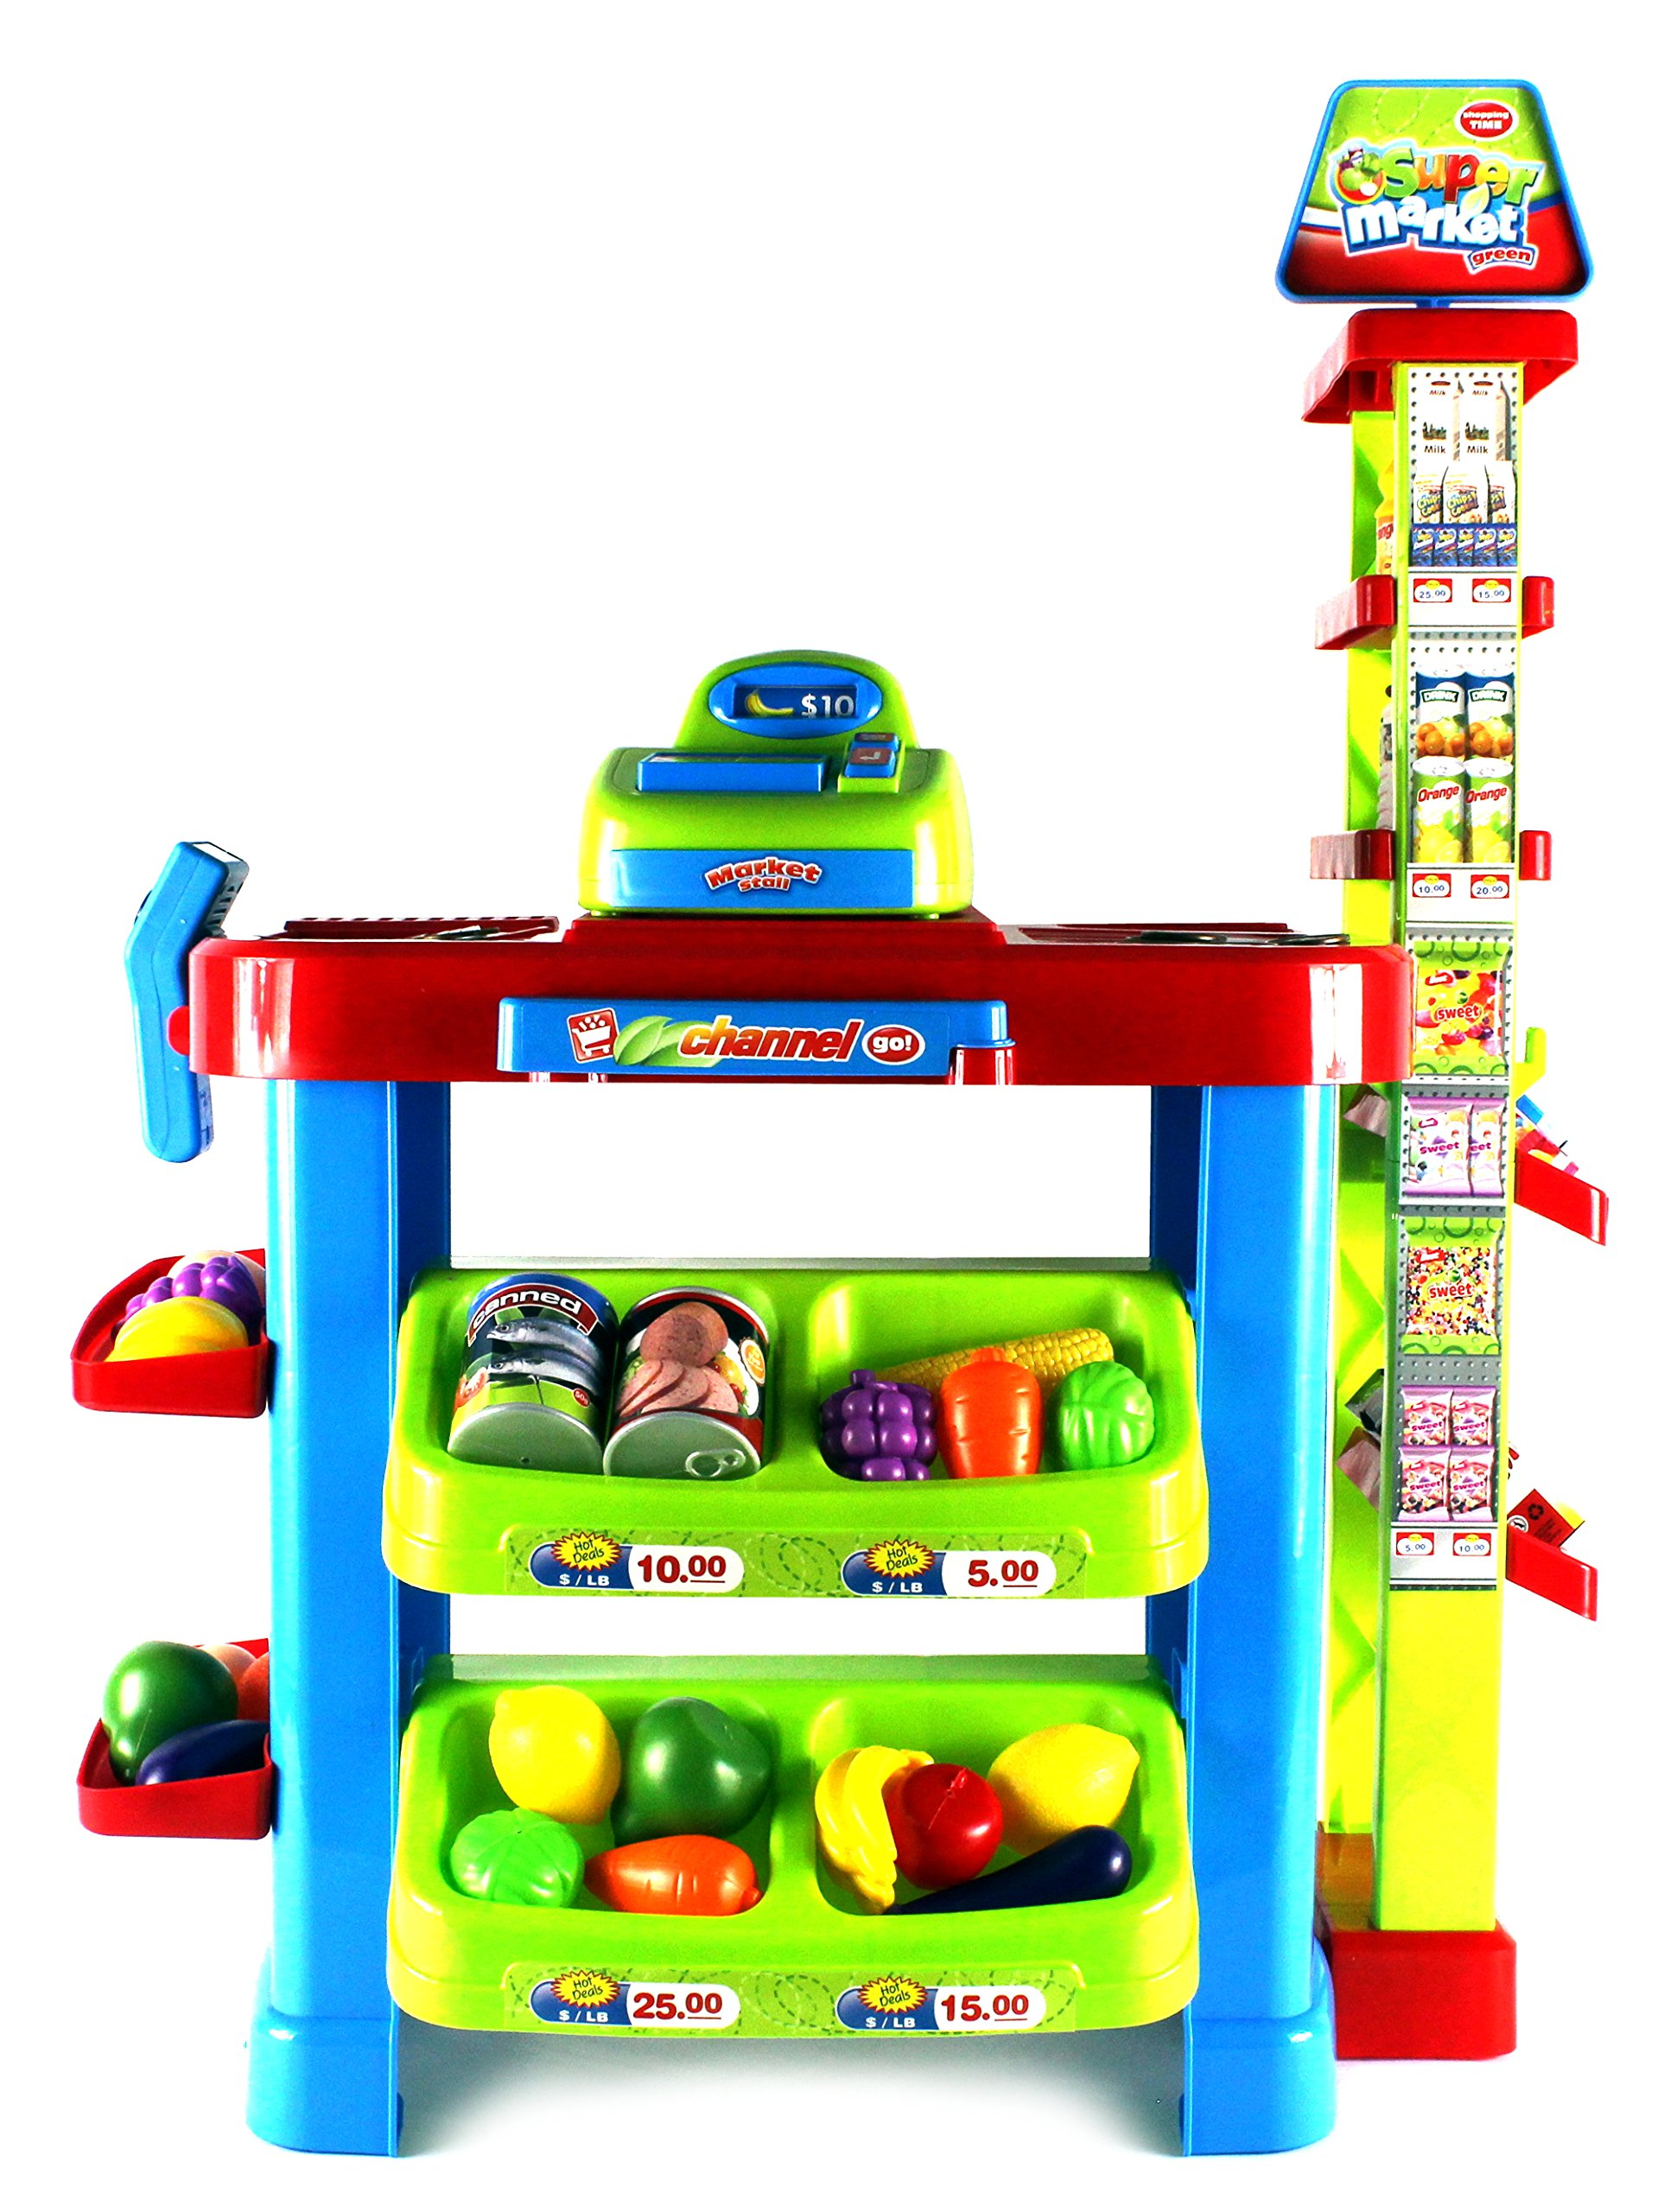 VT Fun Super Market Pretend Play Toy Market Play Set w/ Toy Cash Register, Working Scanner, Shopping Cart, Pretend Food and Money by Velocity Toys